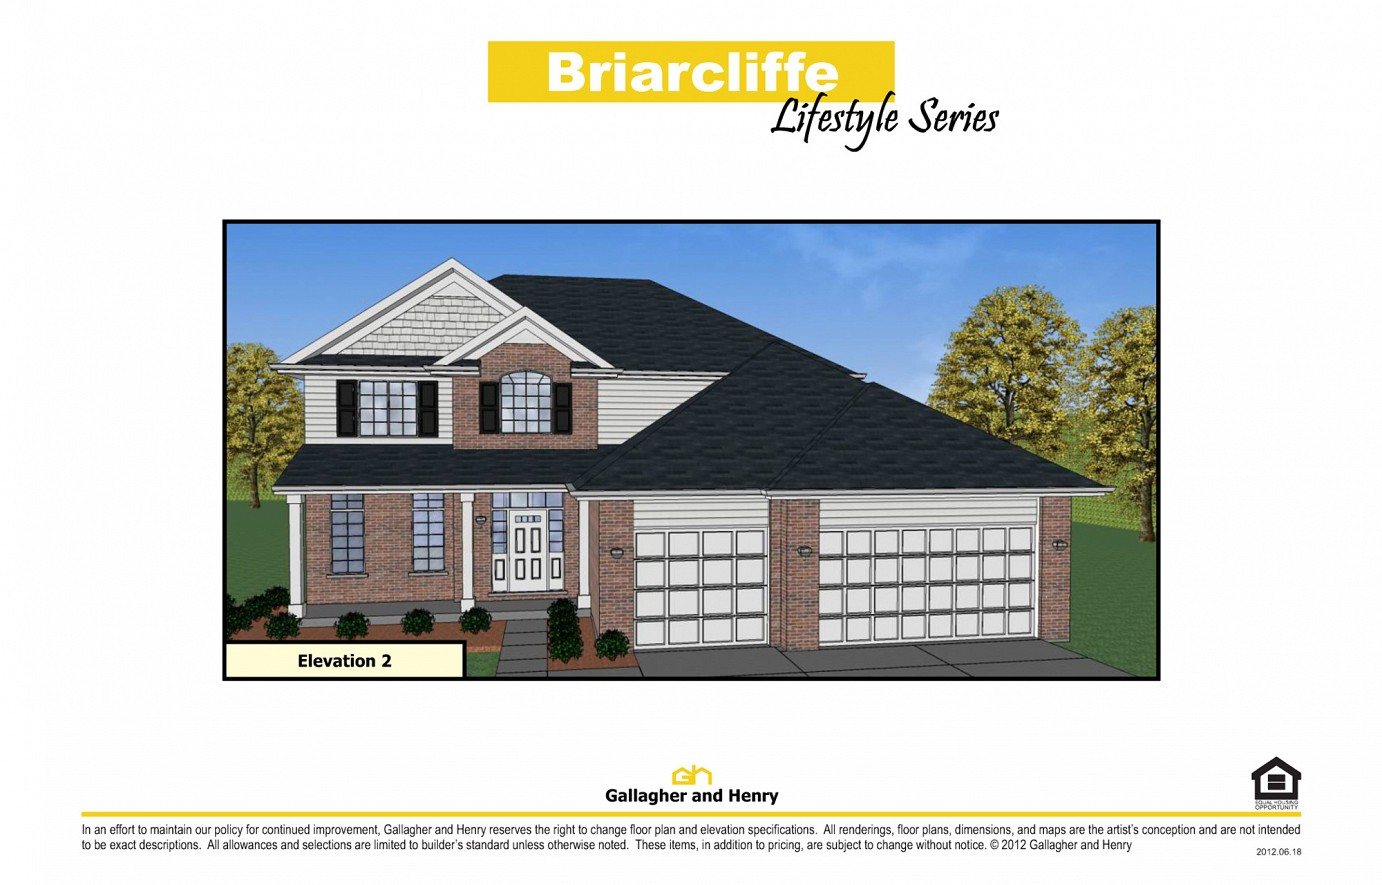 briarcliffe-elevations_3.jpg